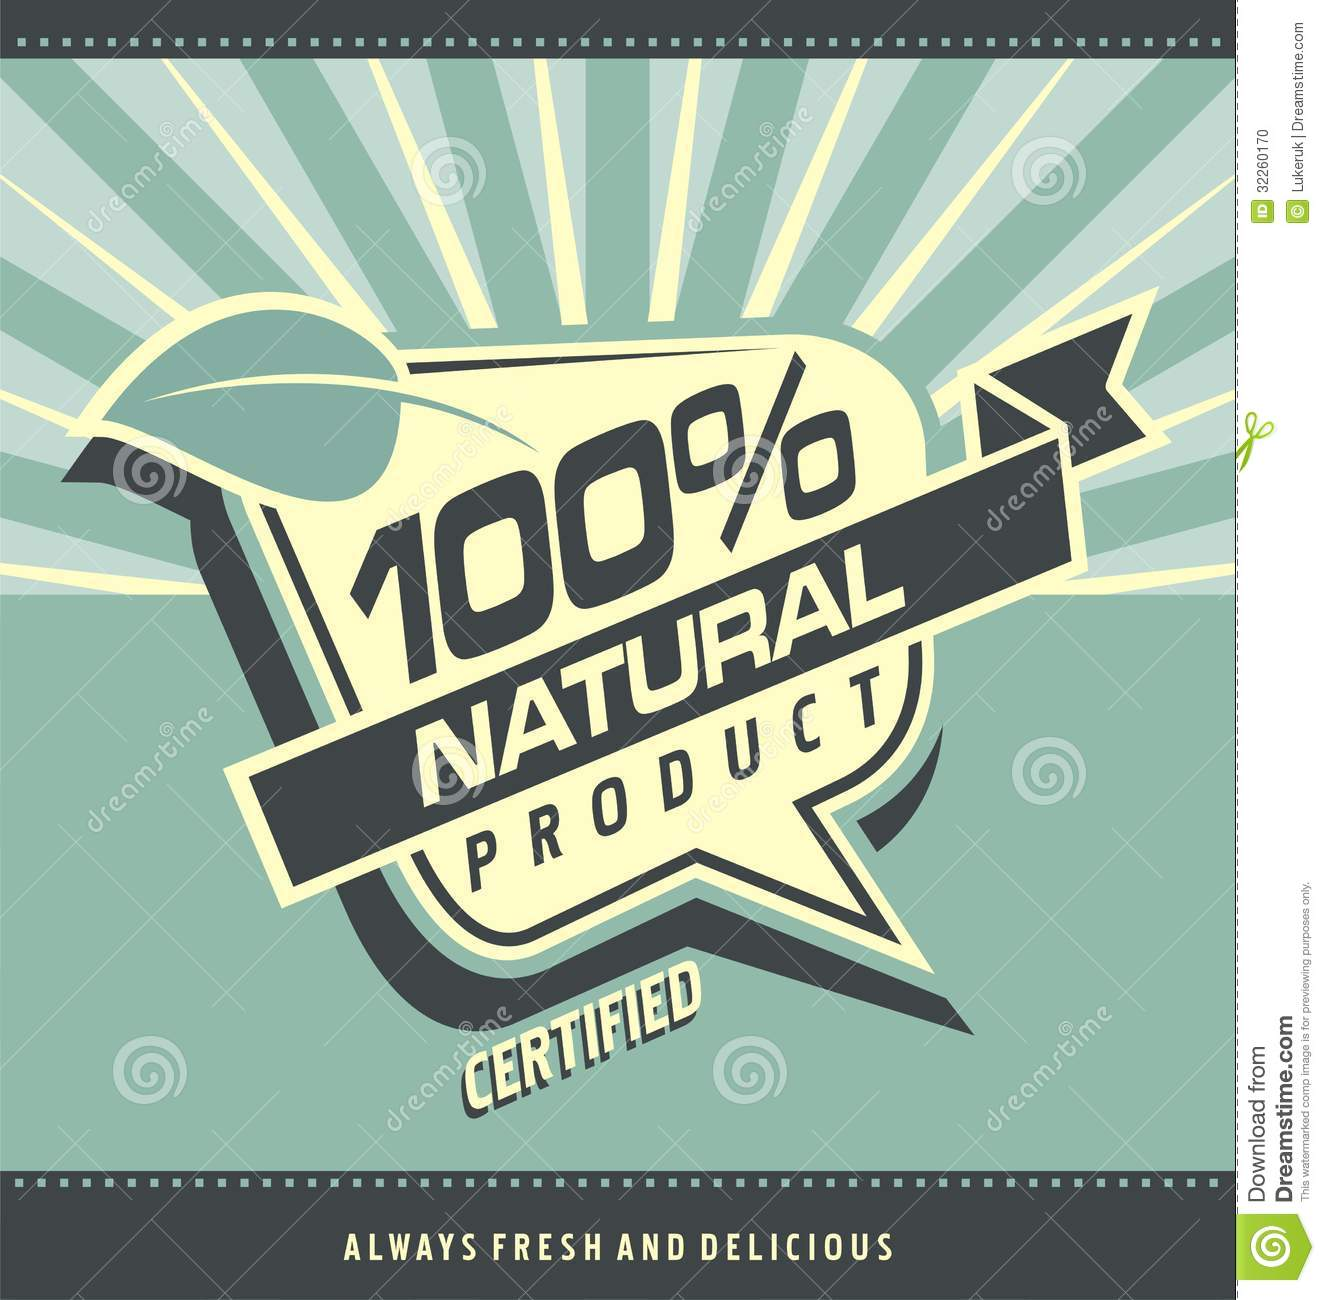 retro label for organic food stock vector - illustration of labels